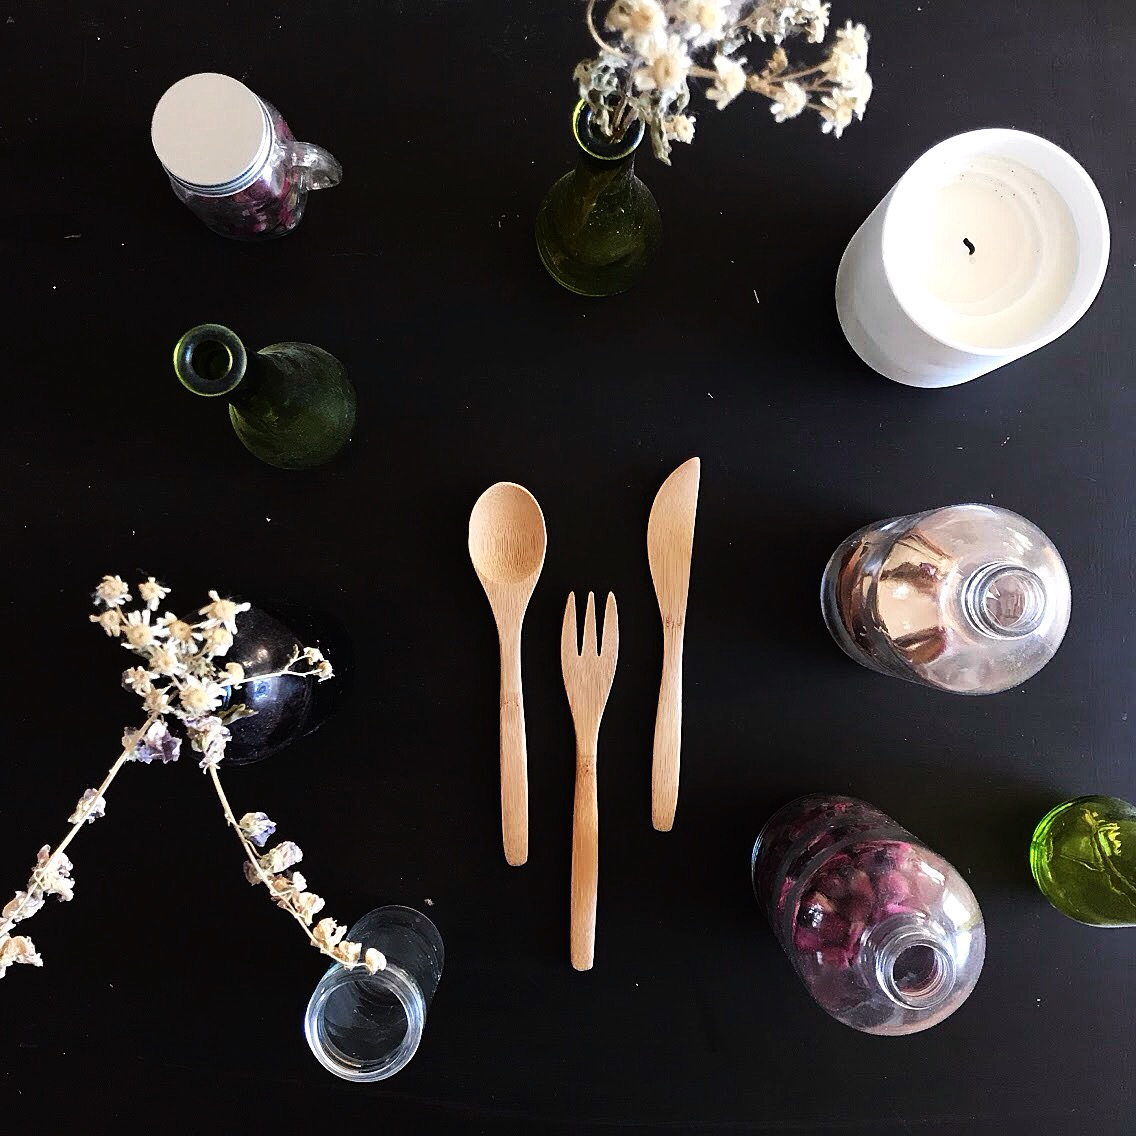 Zero Waste On The Go: Portable Cutlery To Cut Down Christmas Party Waste